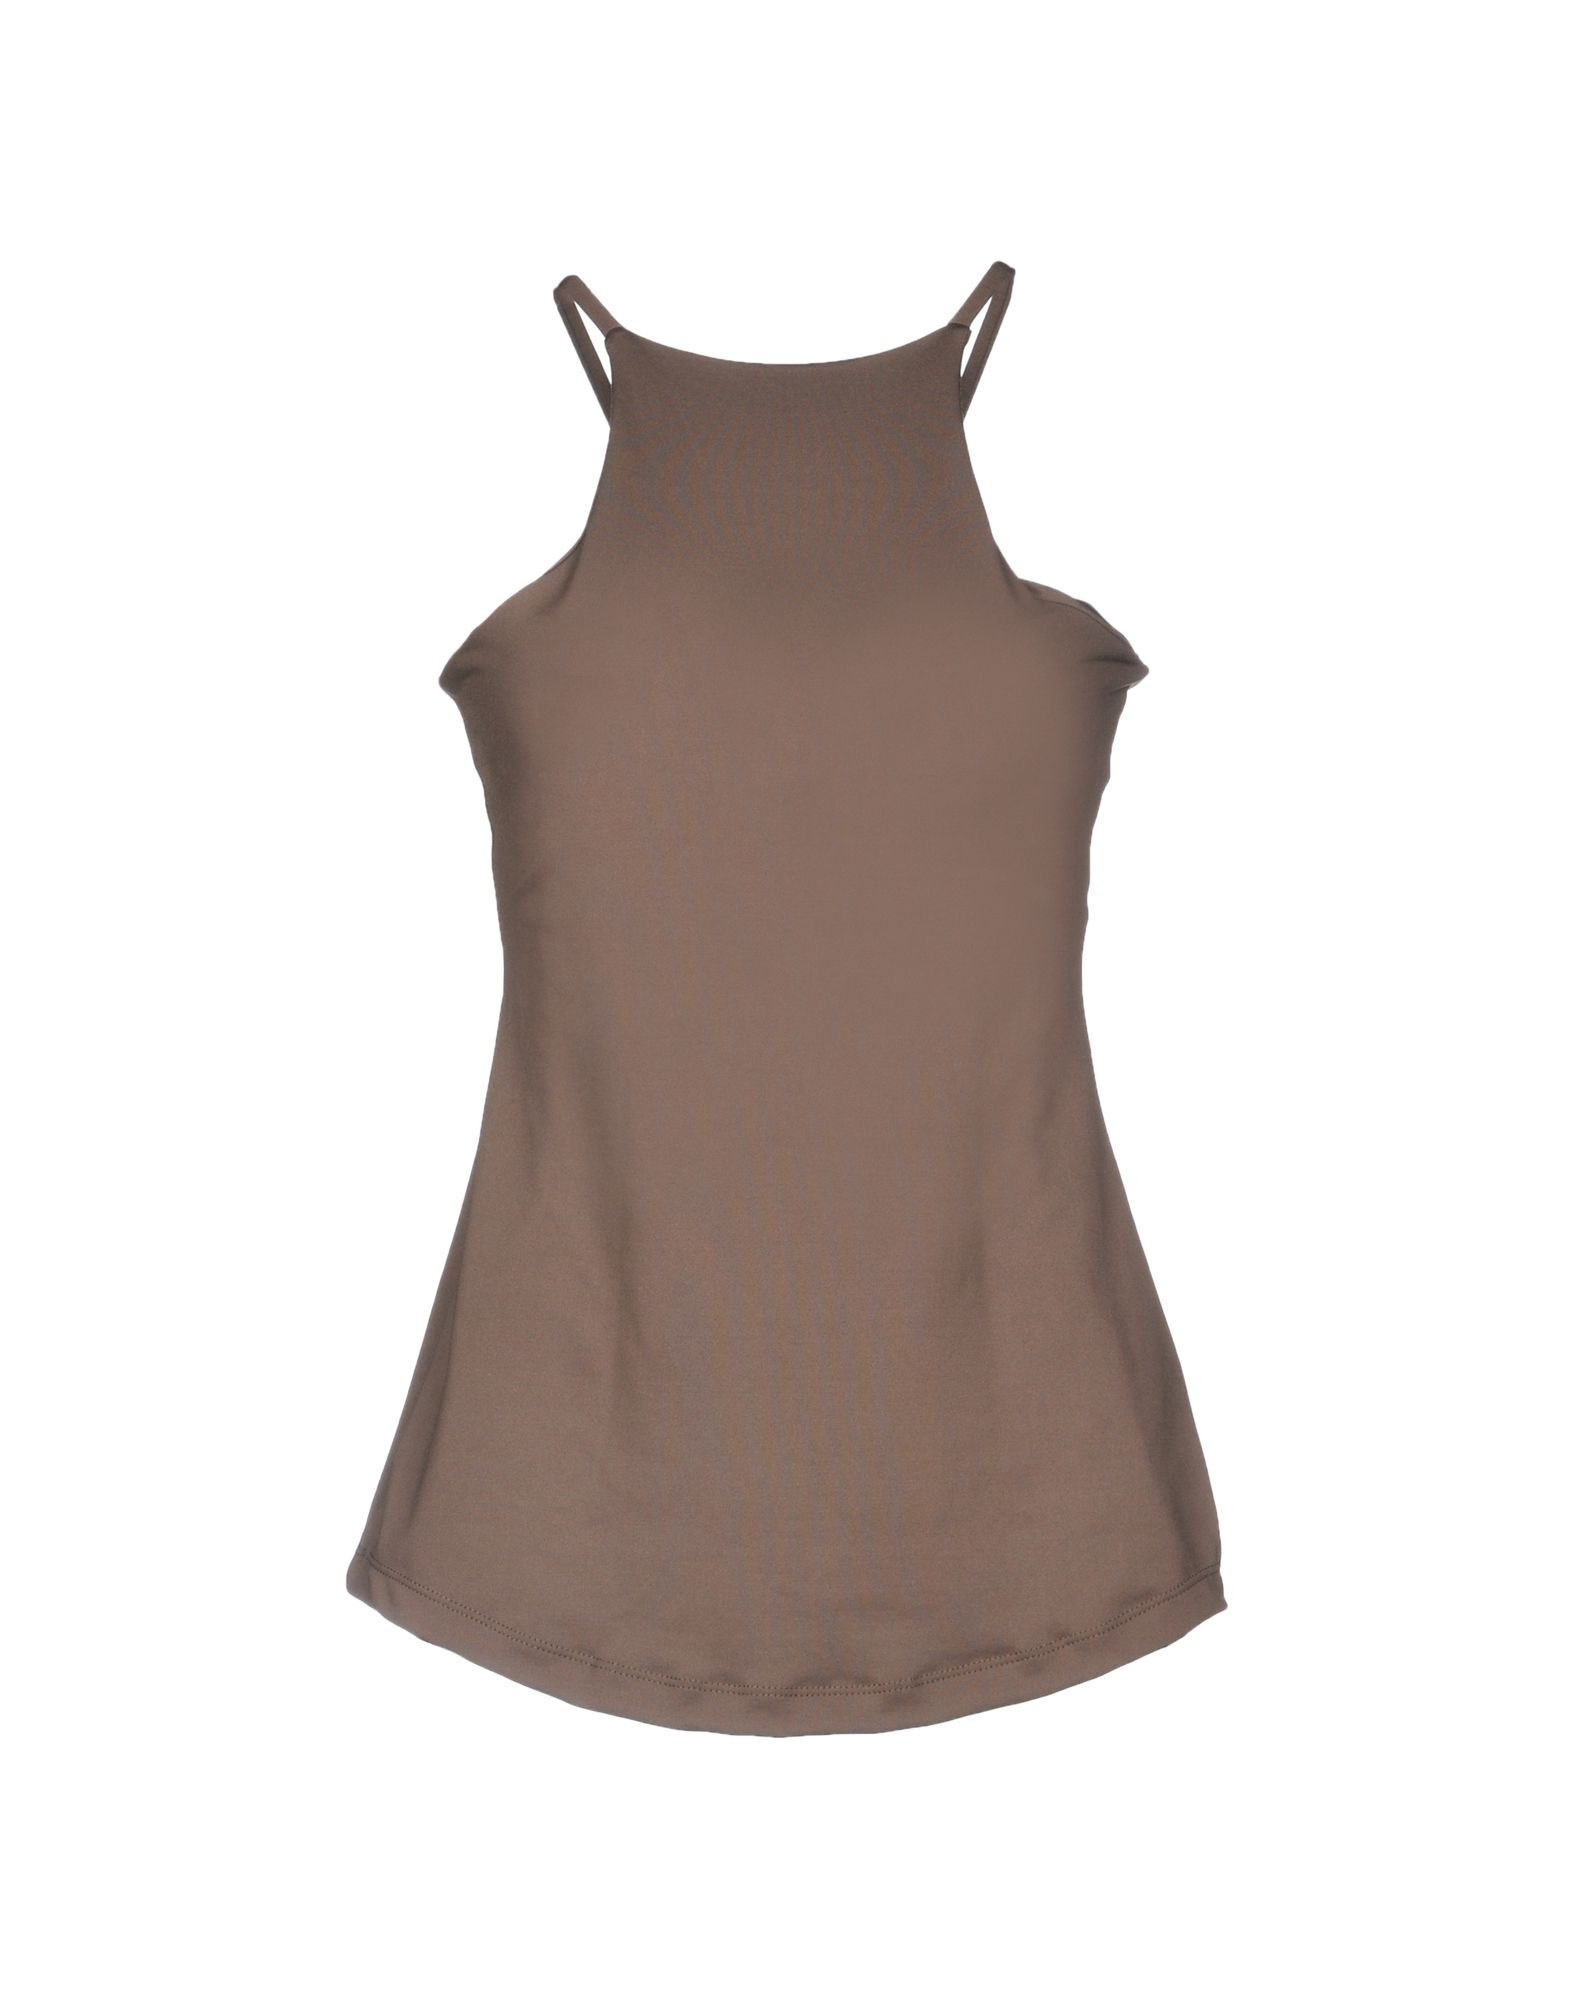 OLYMPIA ACTIVEWEAR Top in Military Green